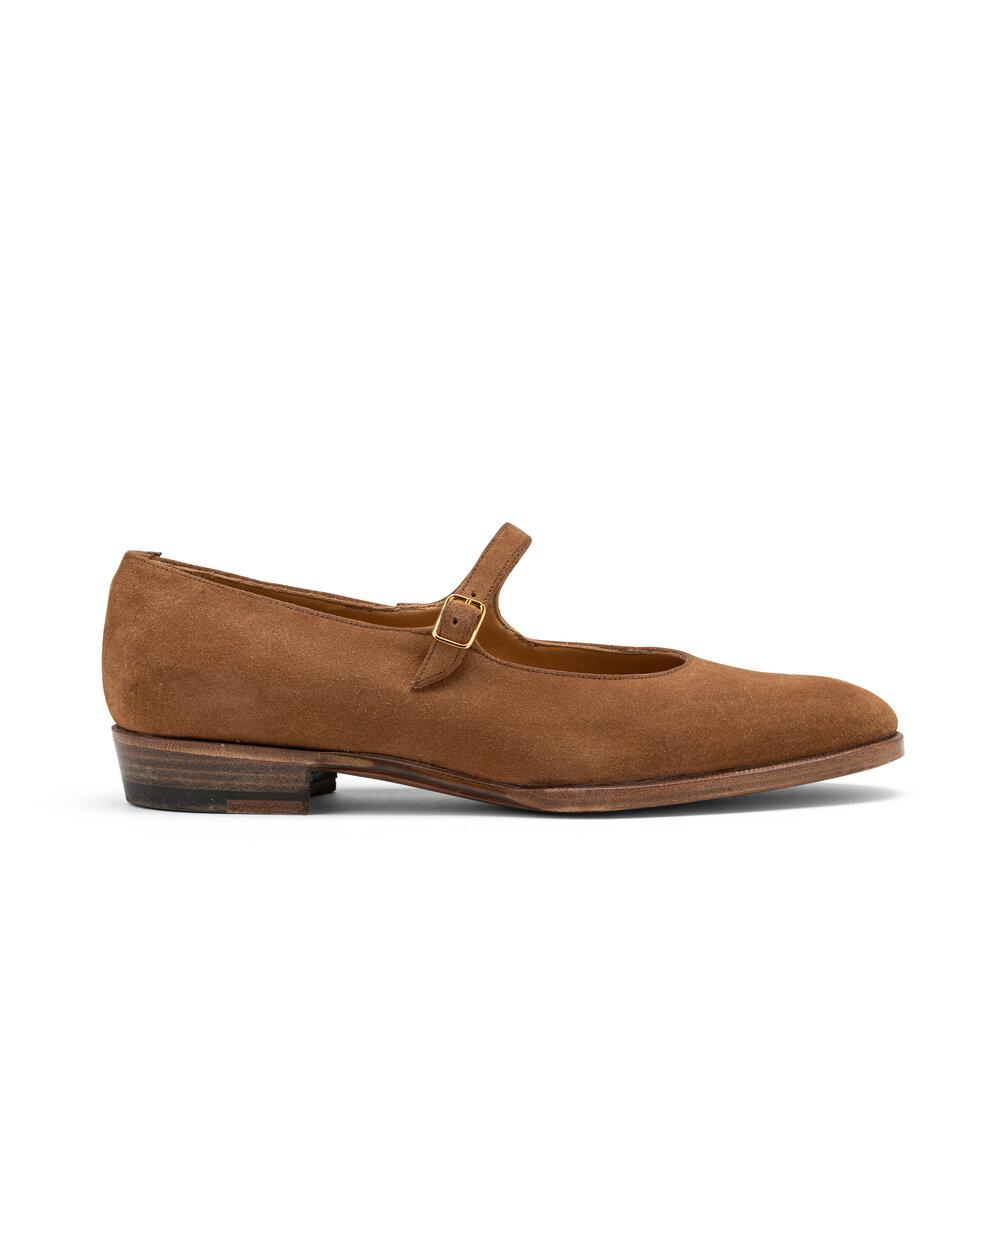 ODPEssentials Classic Mary Jane - Tan Suede 2